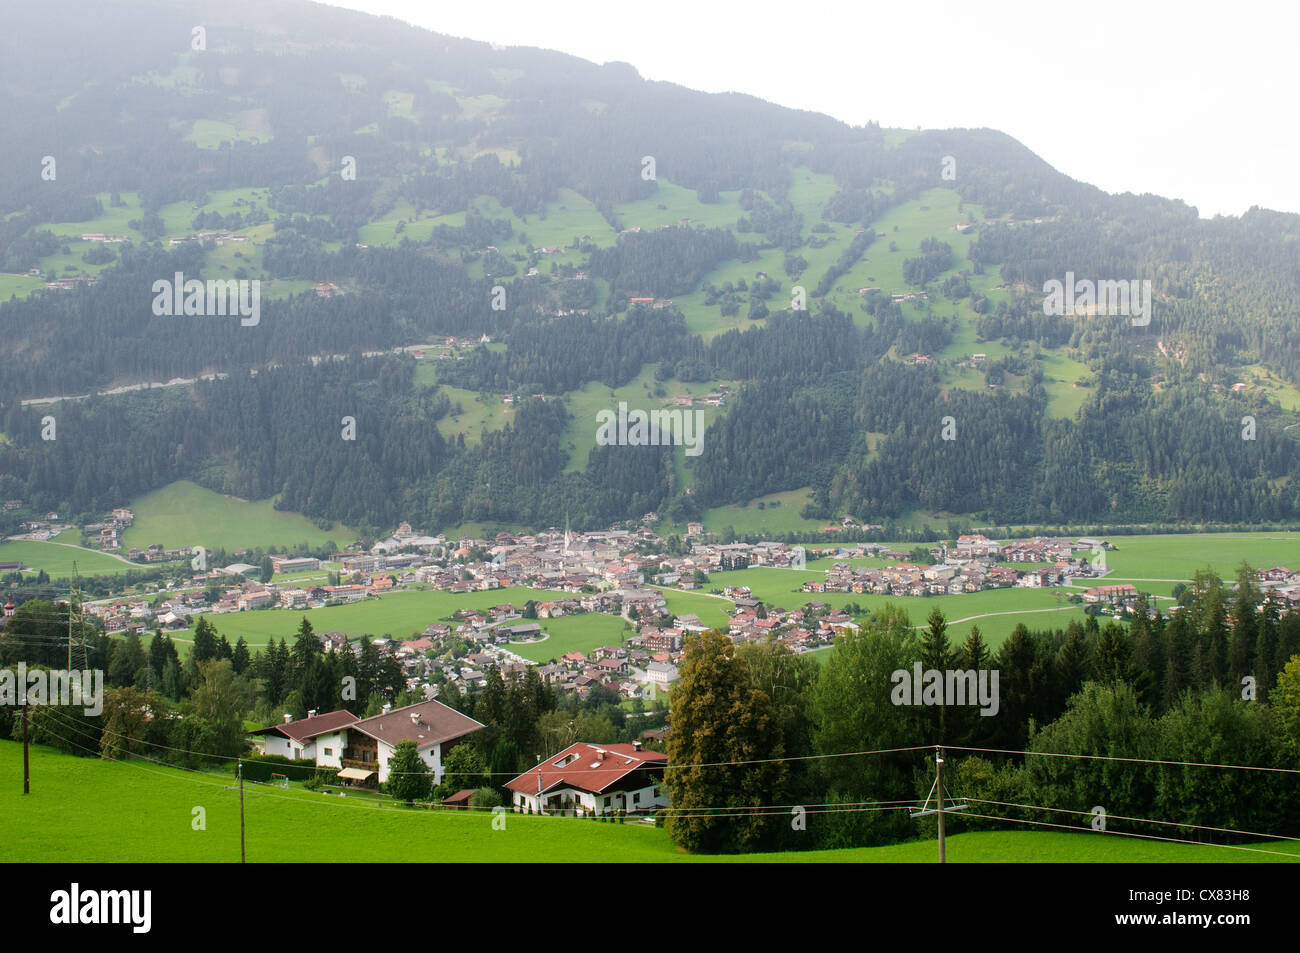 Austria, Tyrol, Zillertal, Mayrhofen elevated view - Stock Image